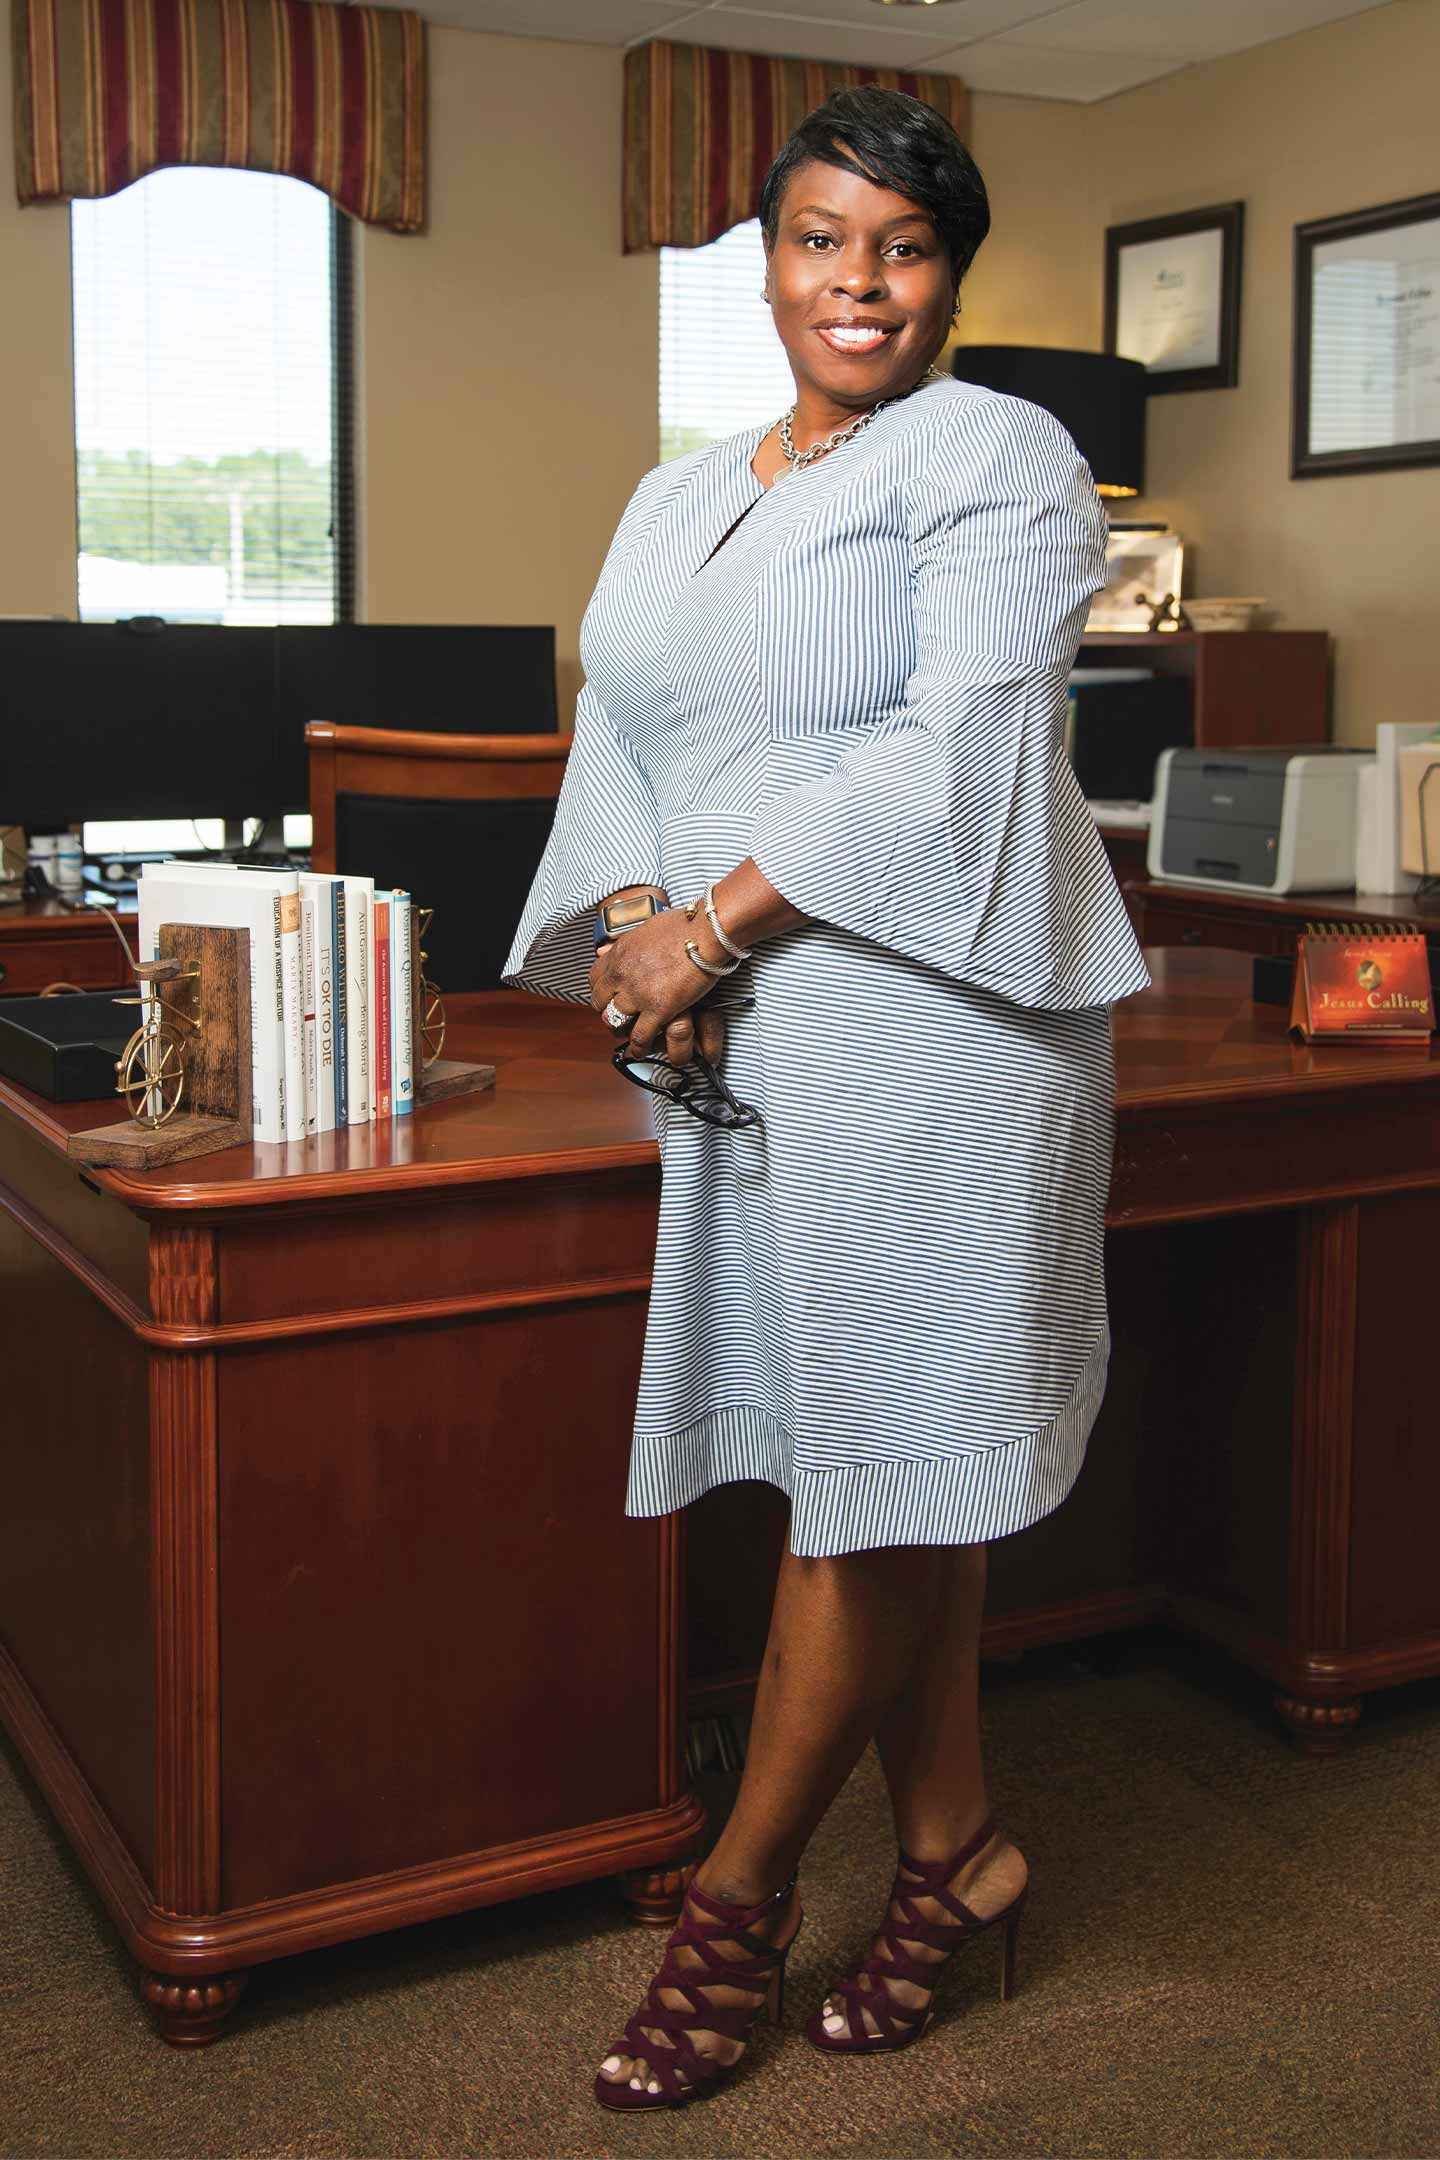 Tracy Wood President & CEO Hospice of Chattanooga, Alleo Health System